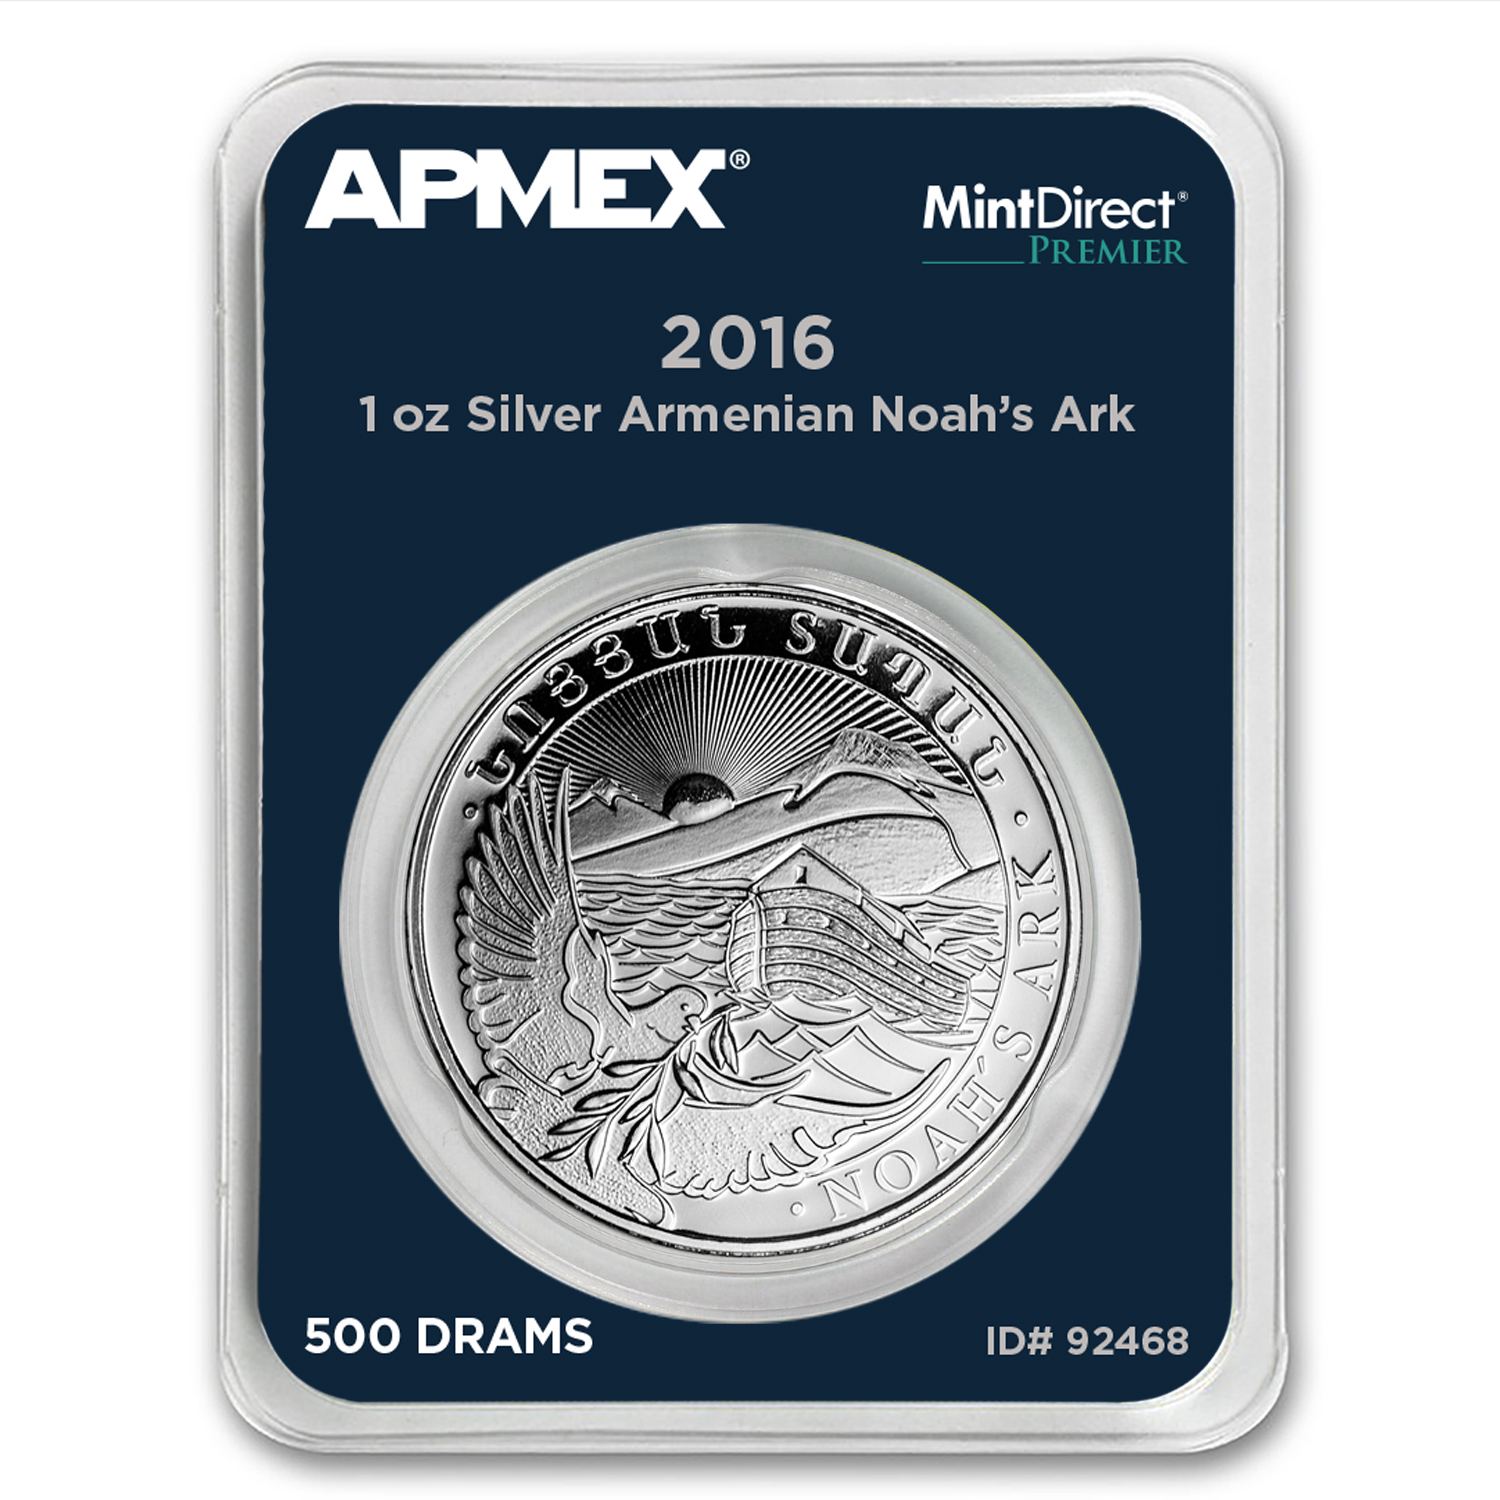 2016 Armenia 1 oz Silver Noah's Ark (MintDirect® Premier Single)